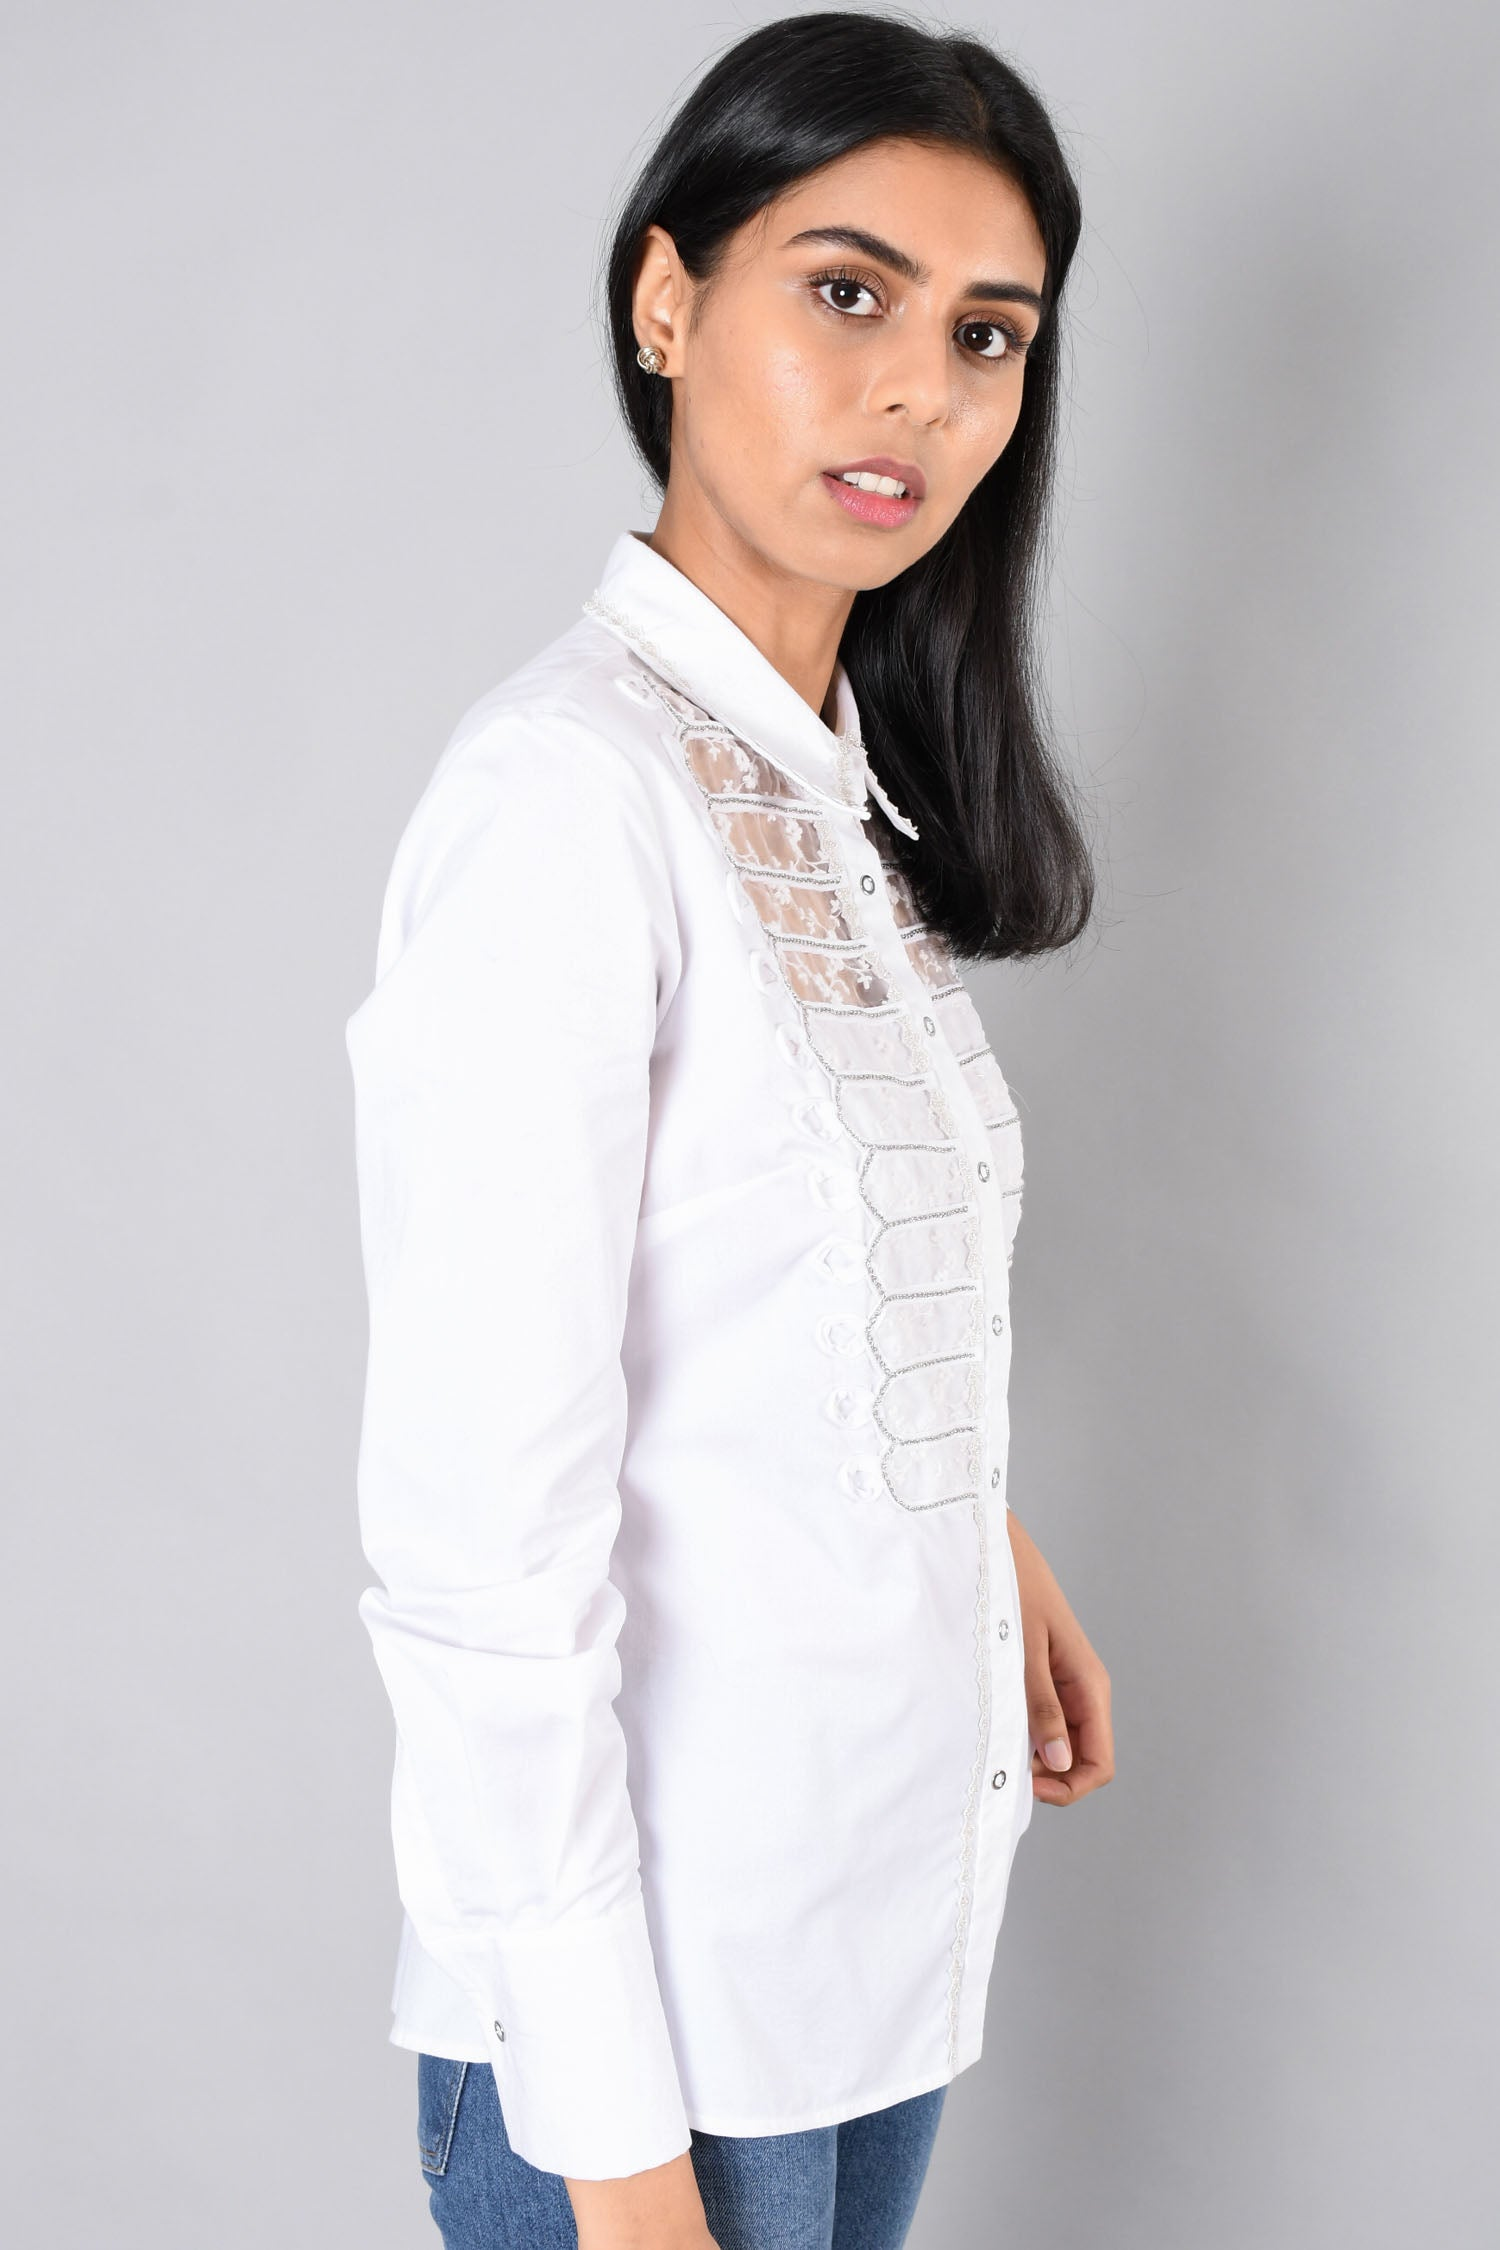 Elie Tahari White Chain Embroidered Button-Up (No Size Tag)